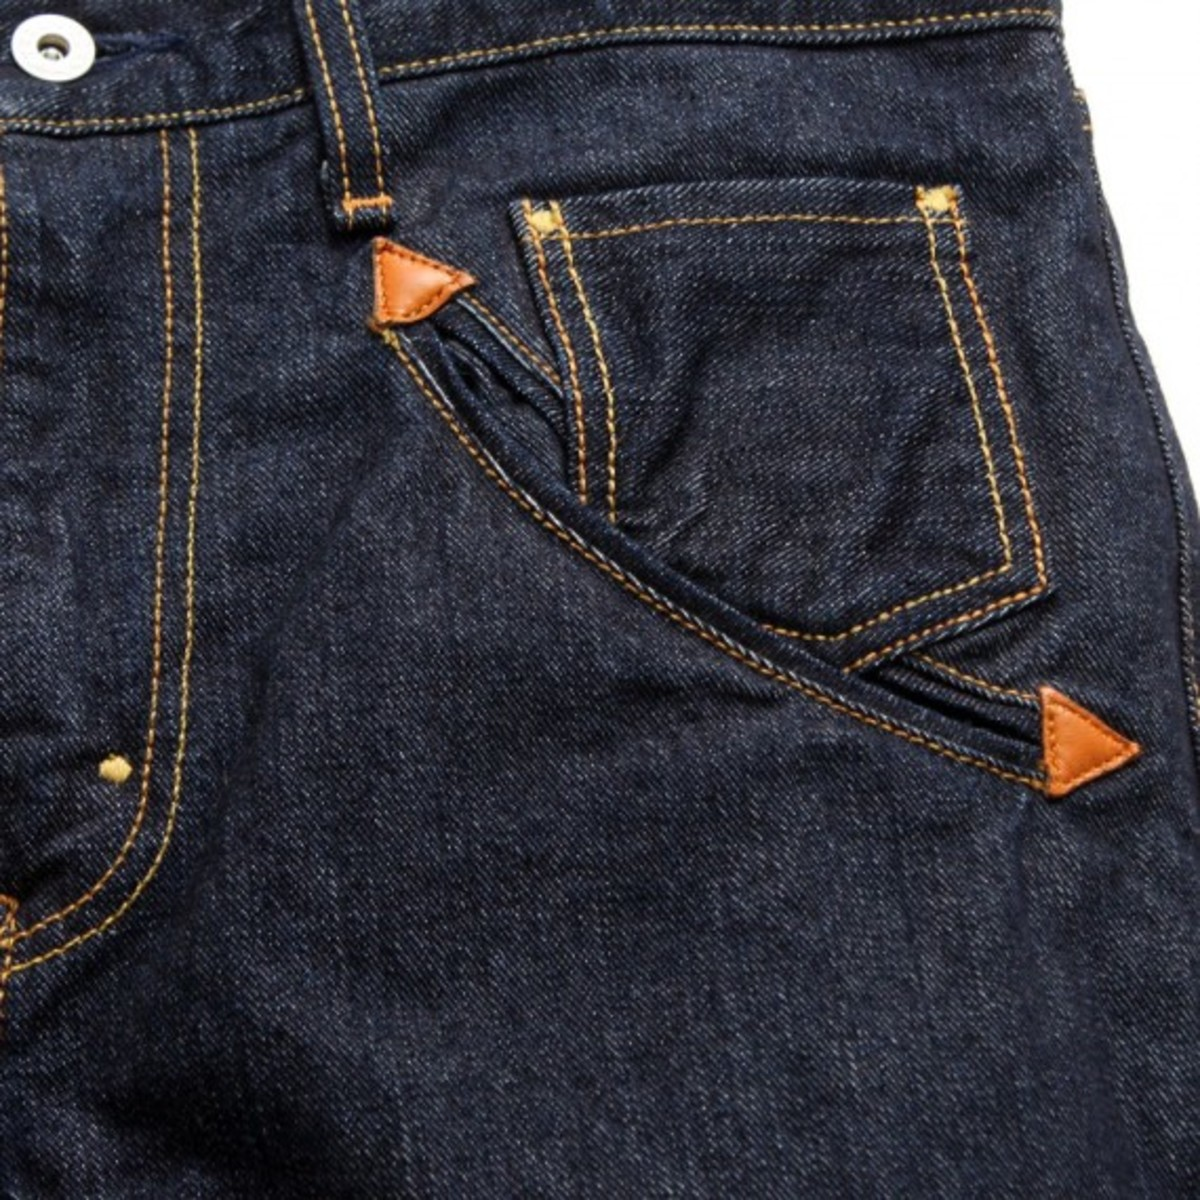 505-jeans-02